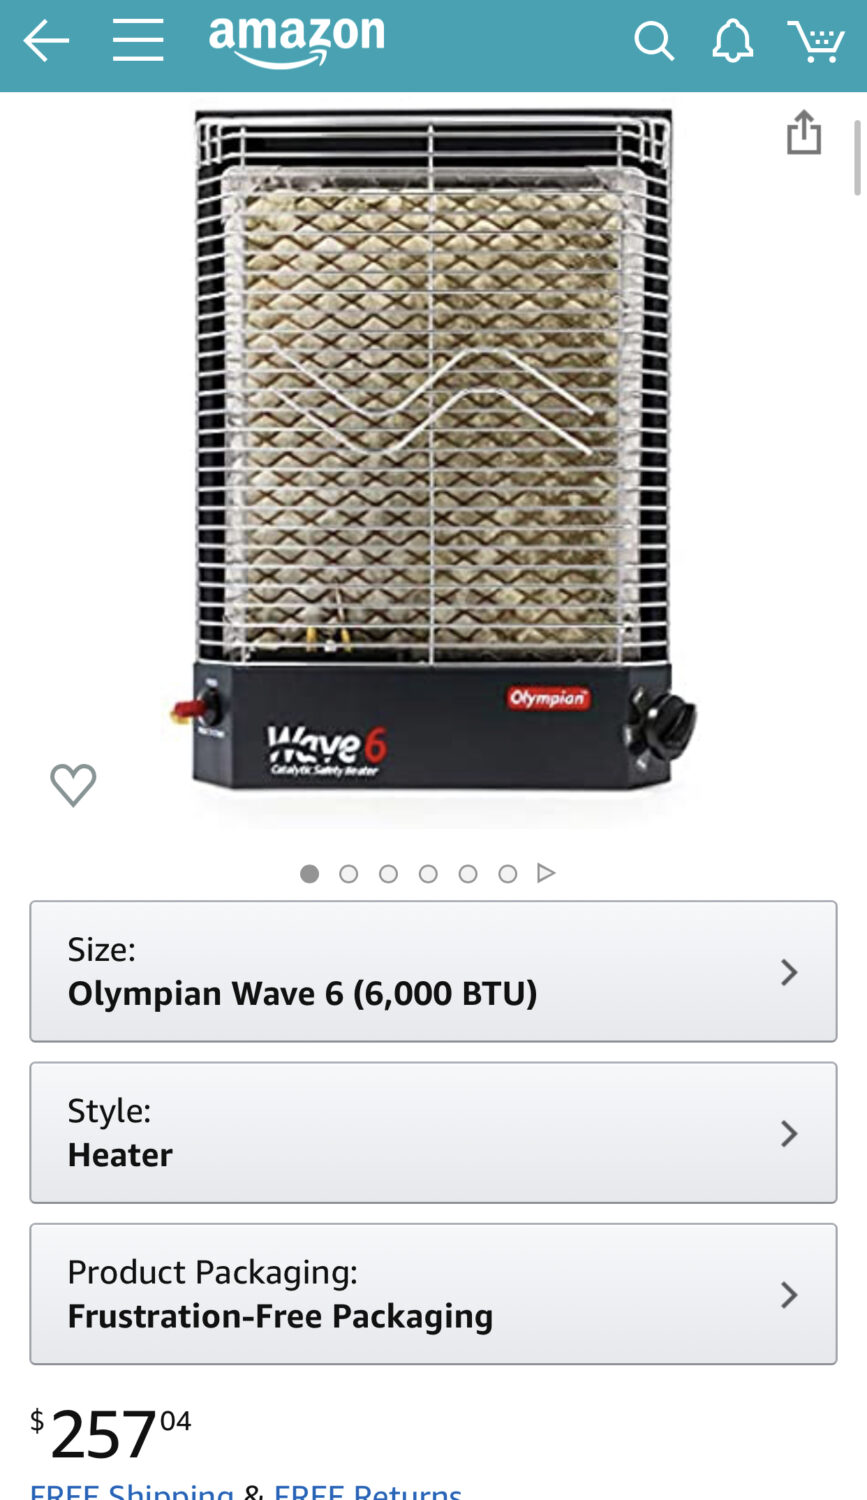 This Olympian Wave-6 catalytic heater was the upgraded version I intended to go with.